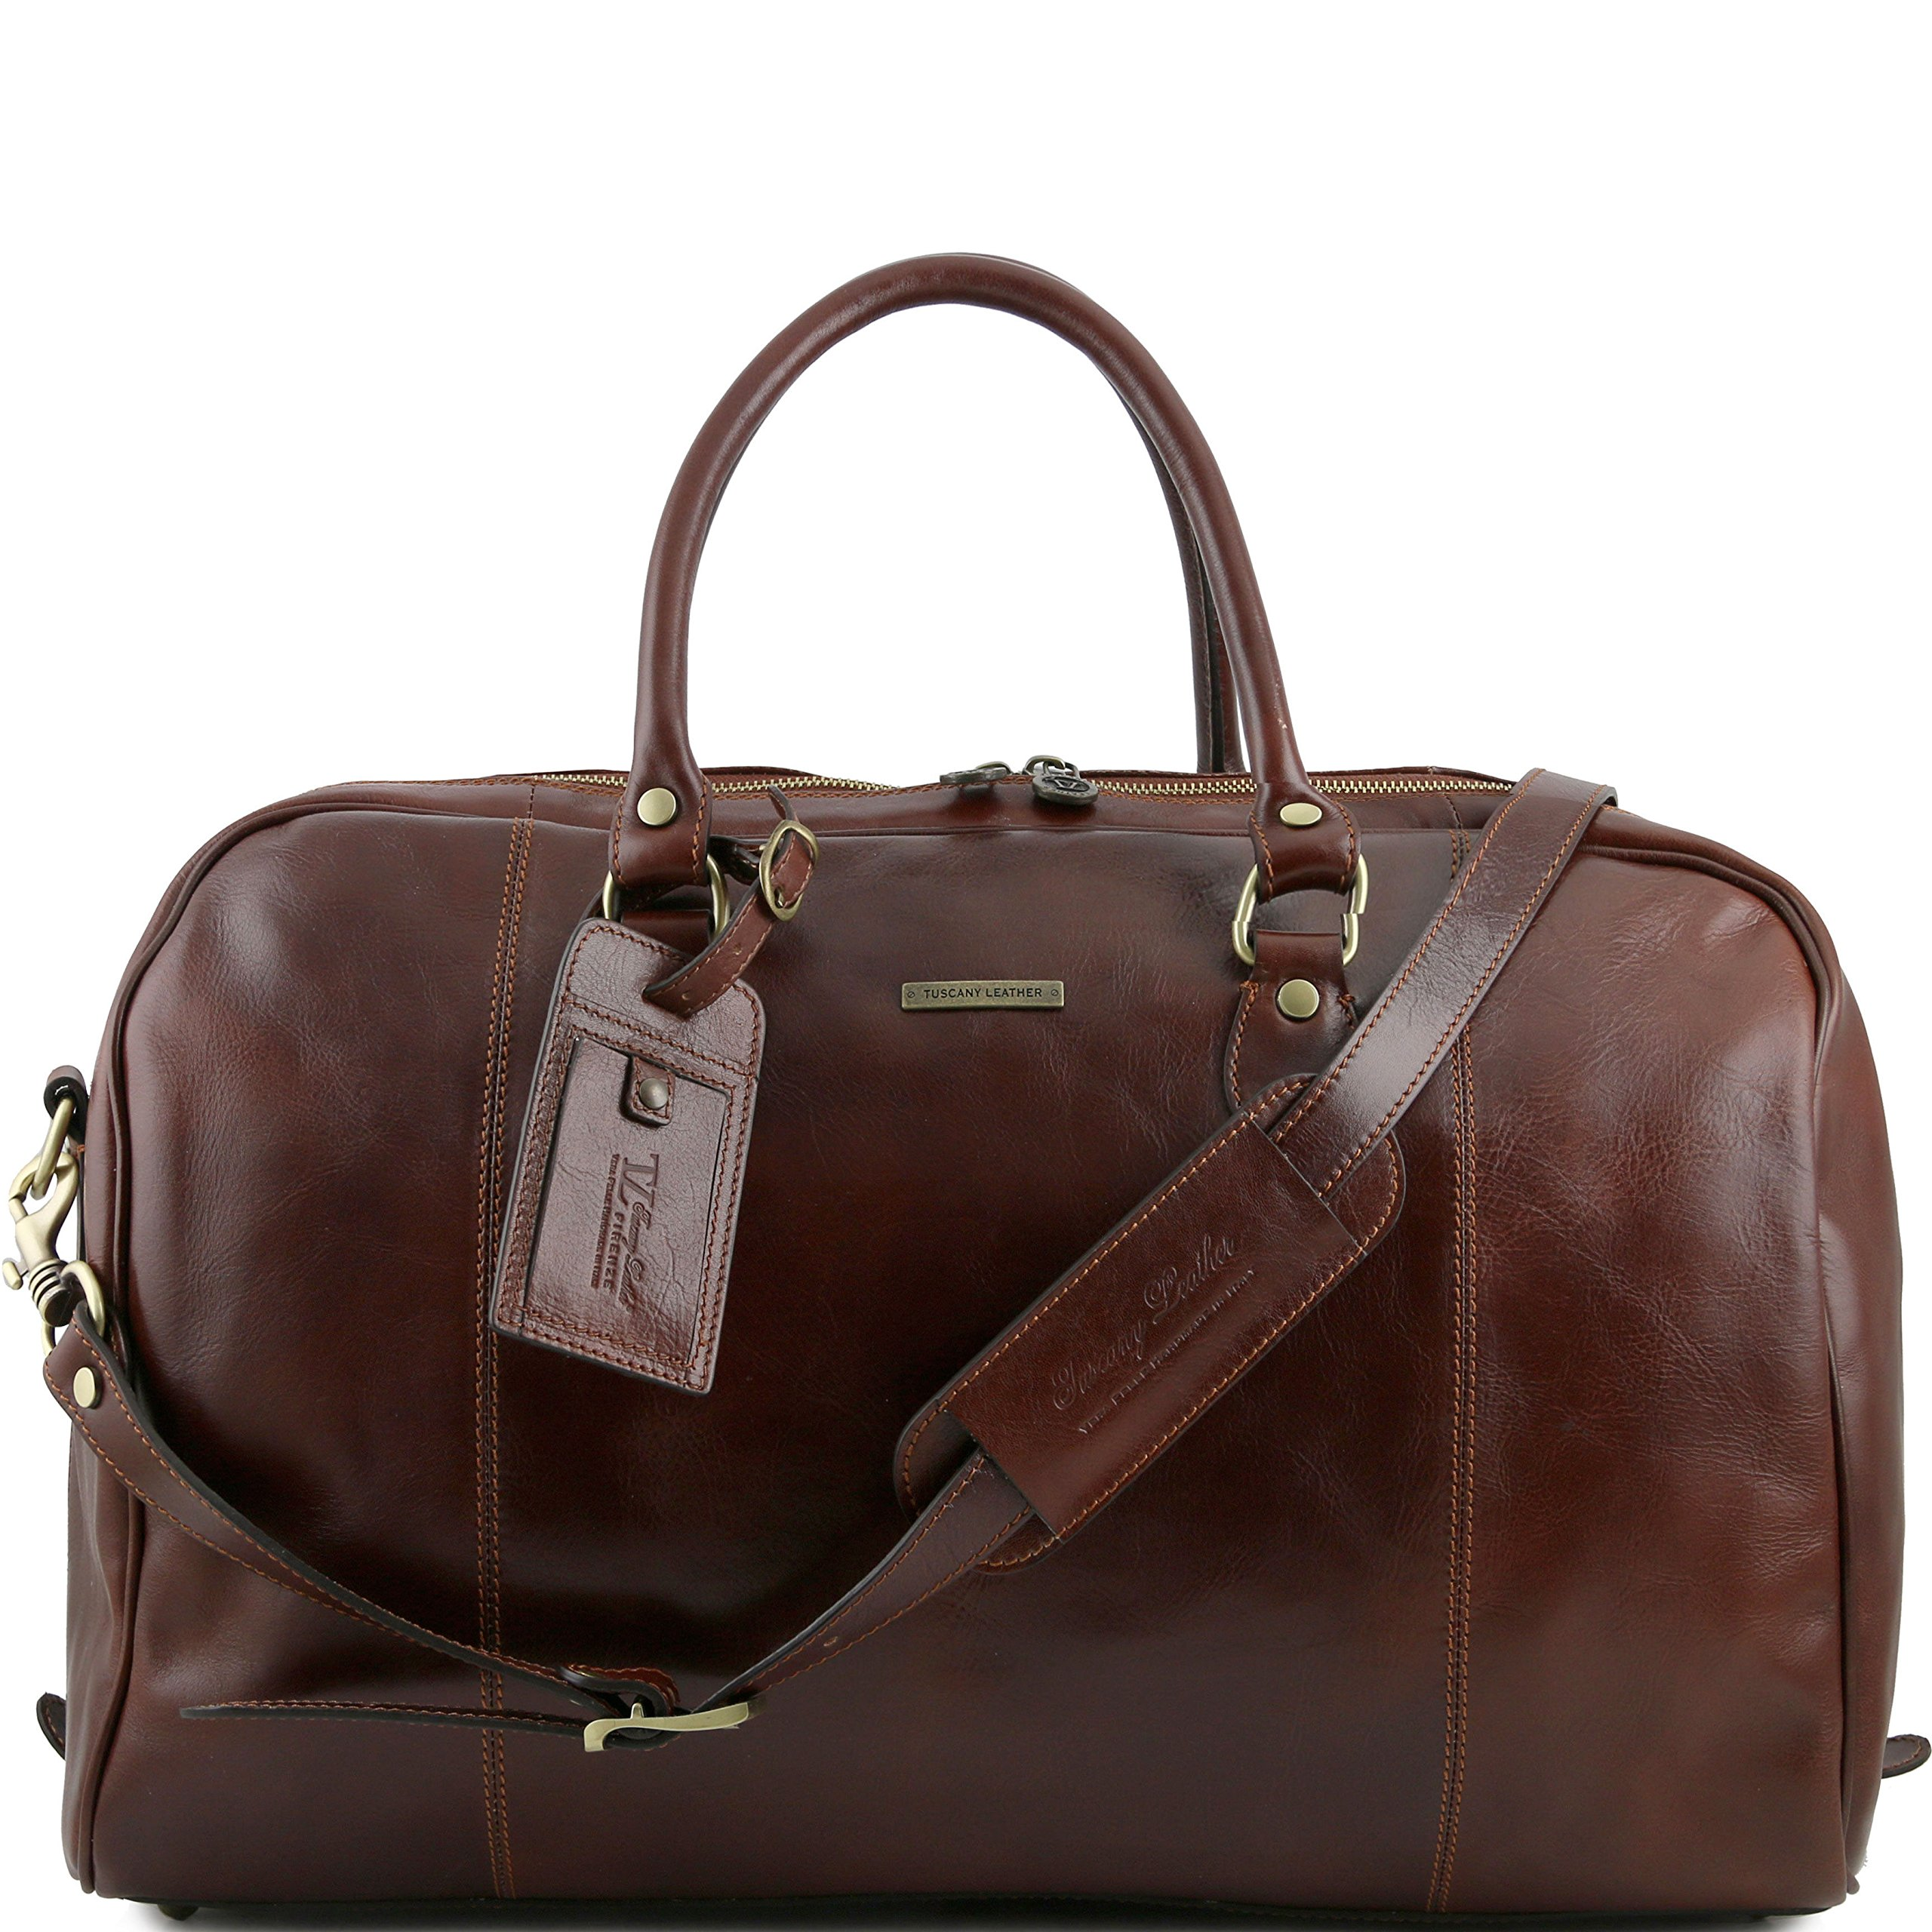 Tuscany Leather TL Voyager Travel leather duffle bag Brown